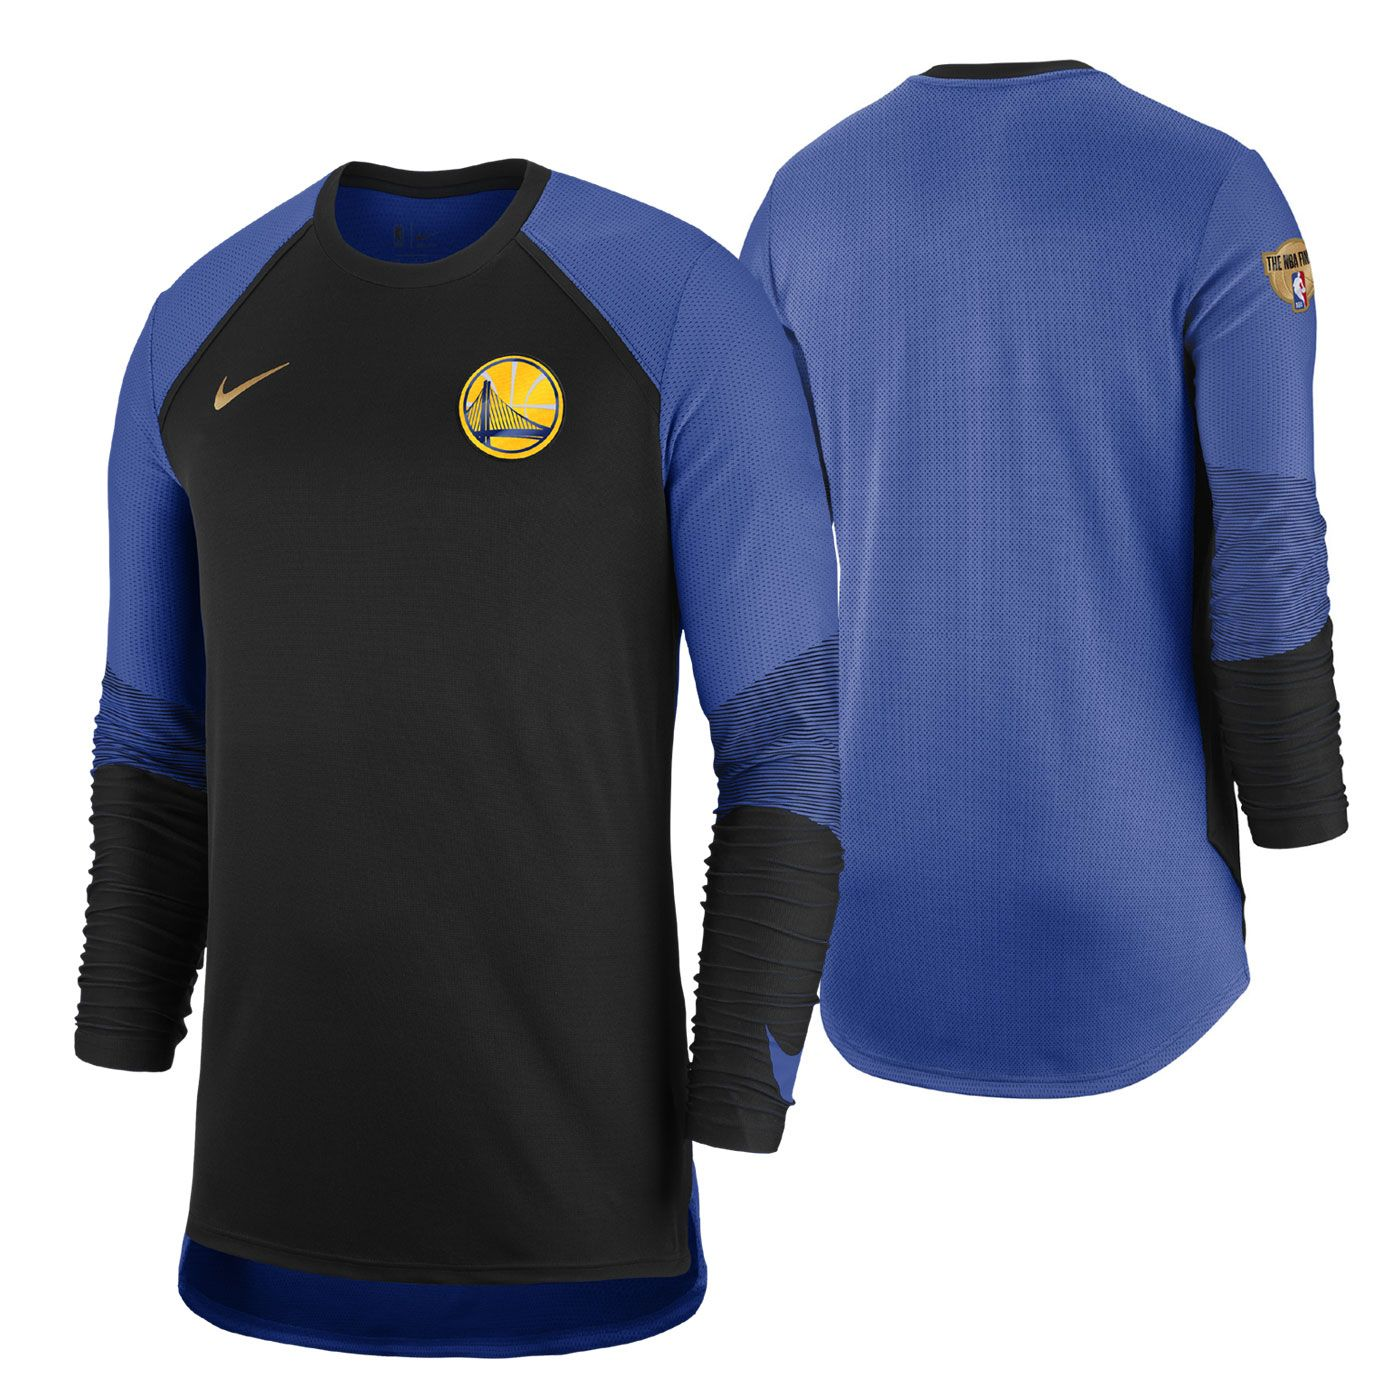 0bd011f65 Golden State Warriors · Long Sleeve Tees · Mens Fitness · Nba Finals  Warriors, Warriors Gear, Compression Sleeves, Nike Tops, Nike Dri Fit